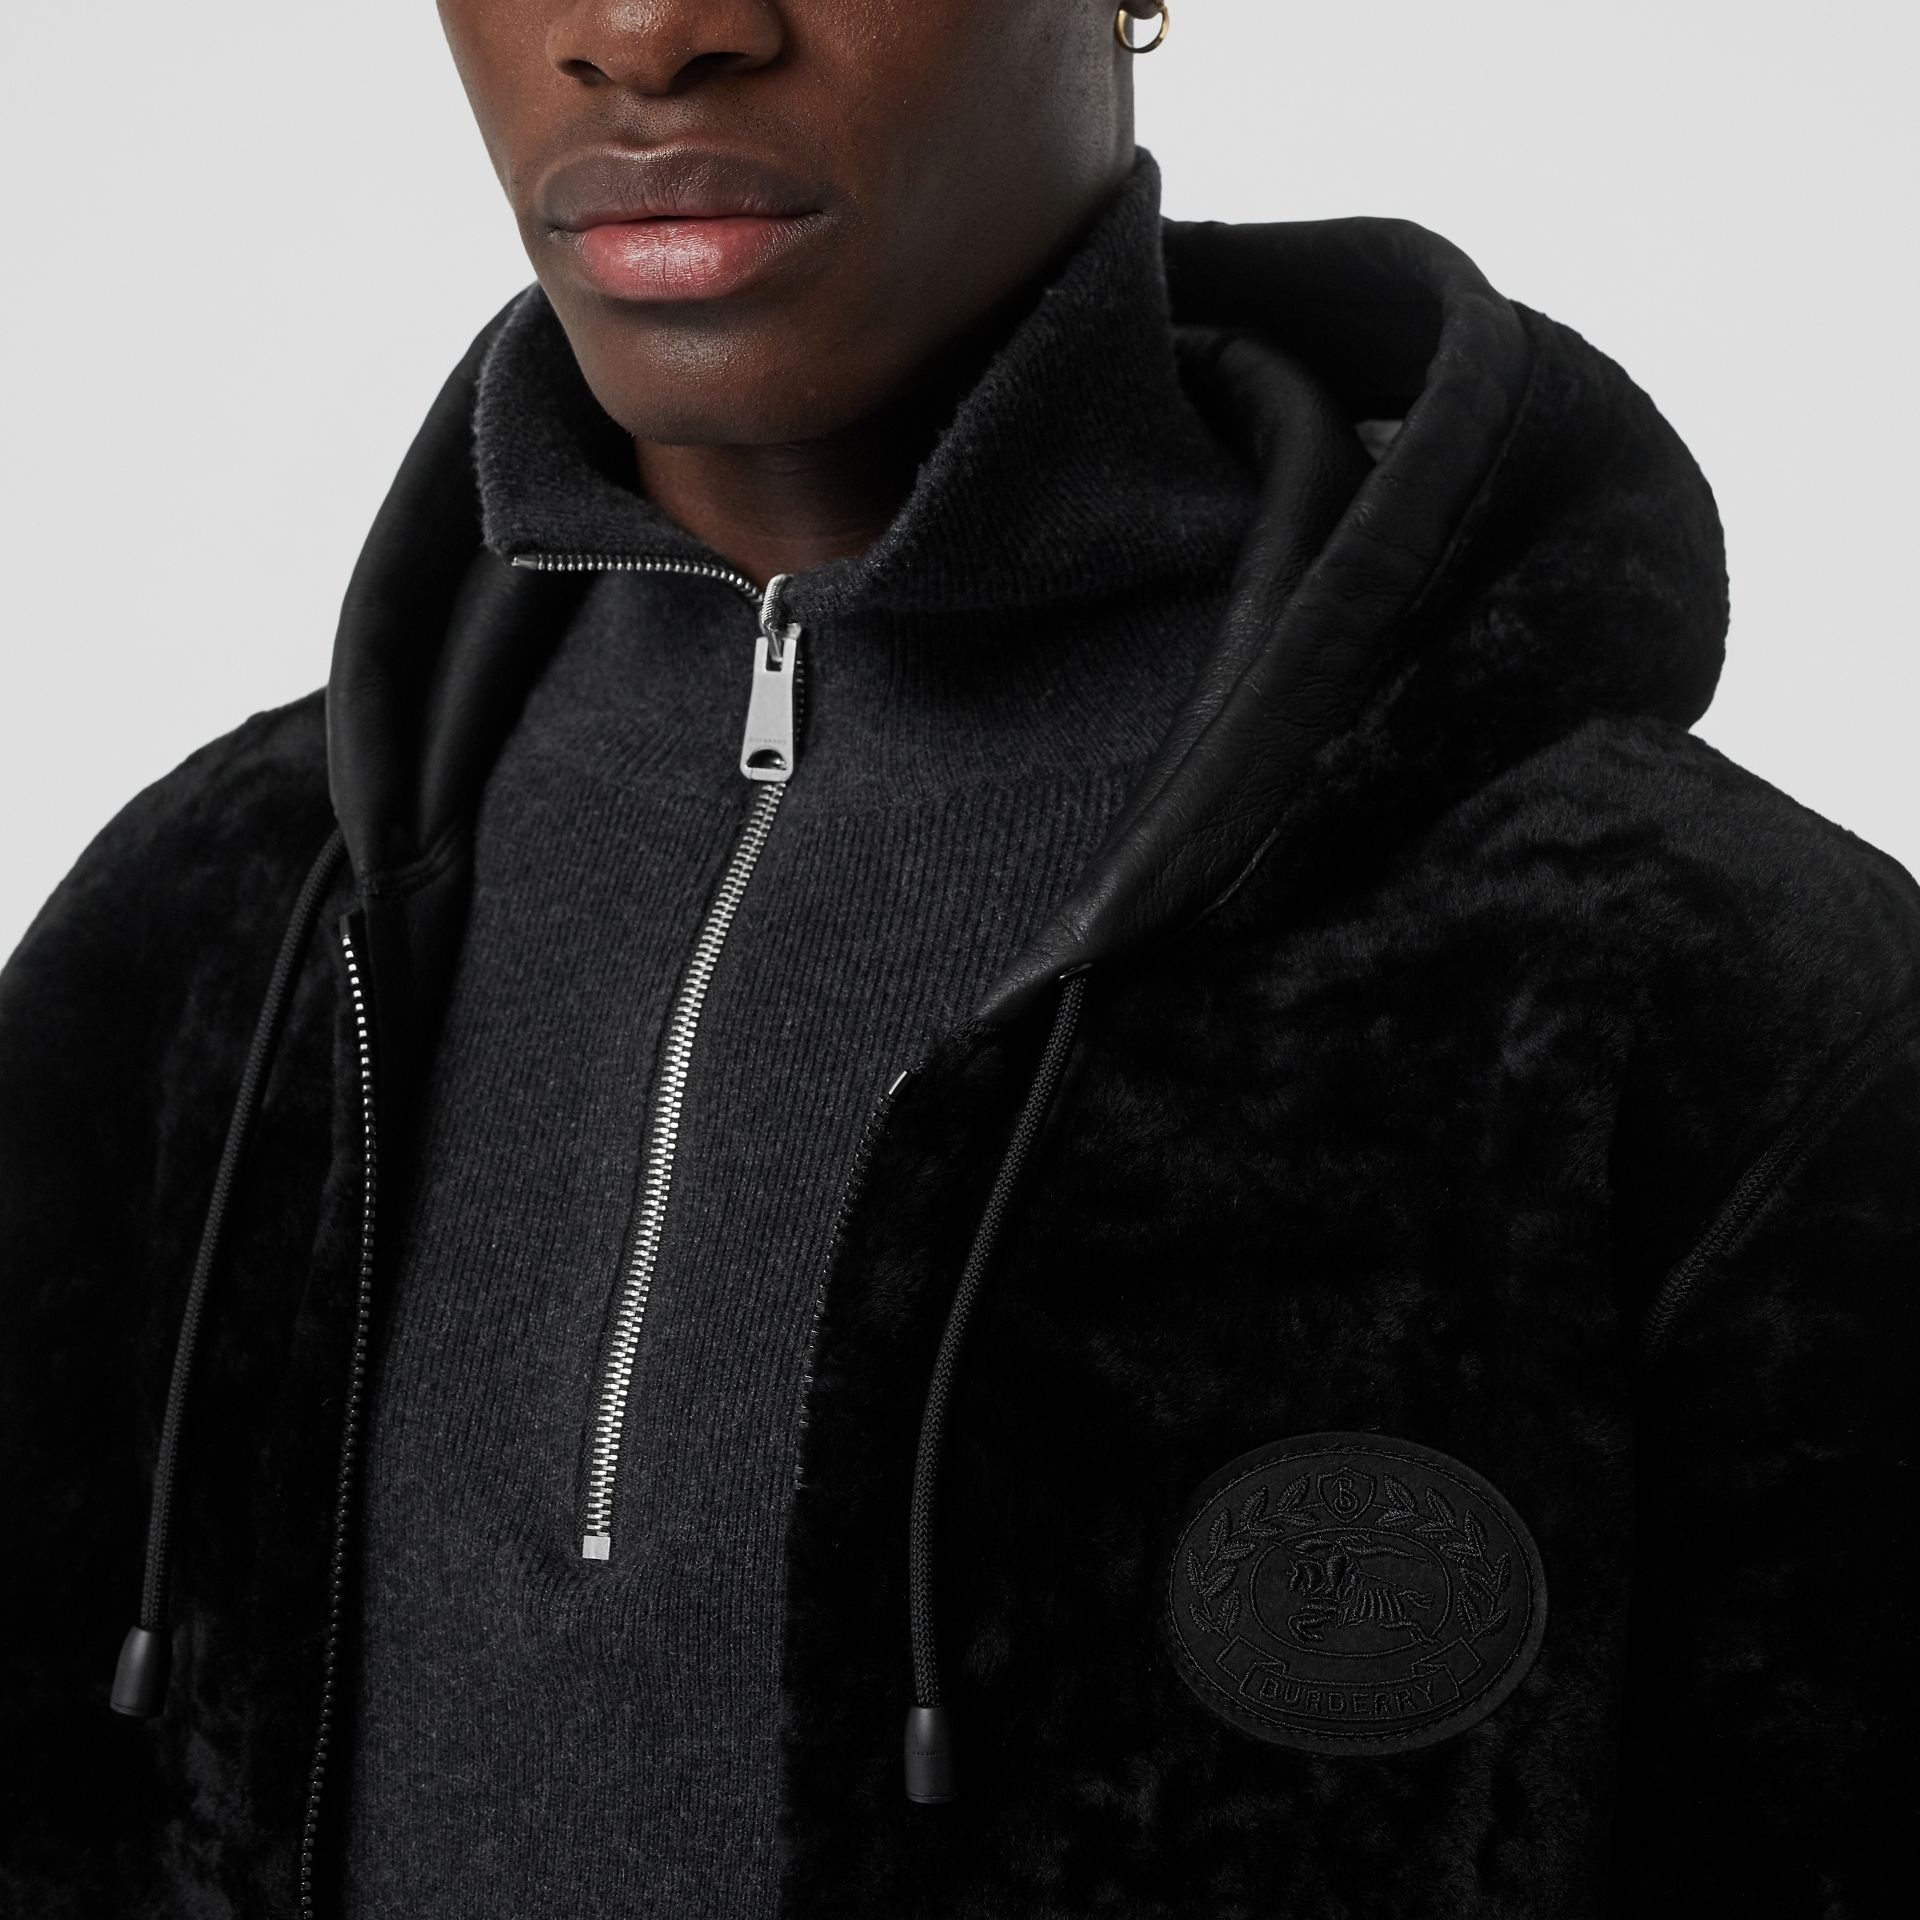 Reversible Shearling Hooded Bomber Jacket in Black - Men | Burberry - gallery image 1